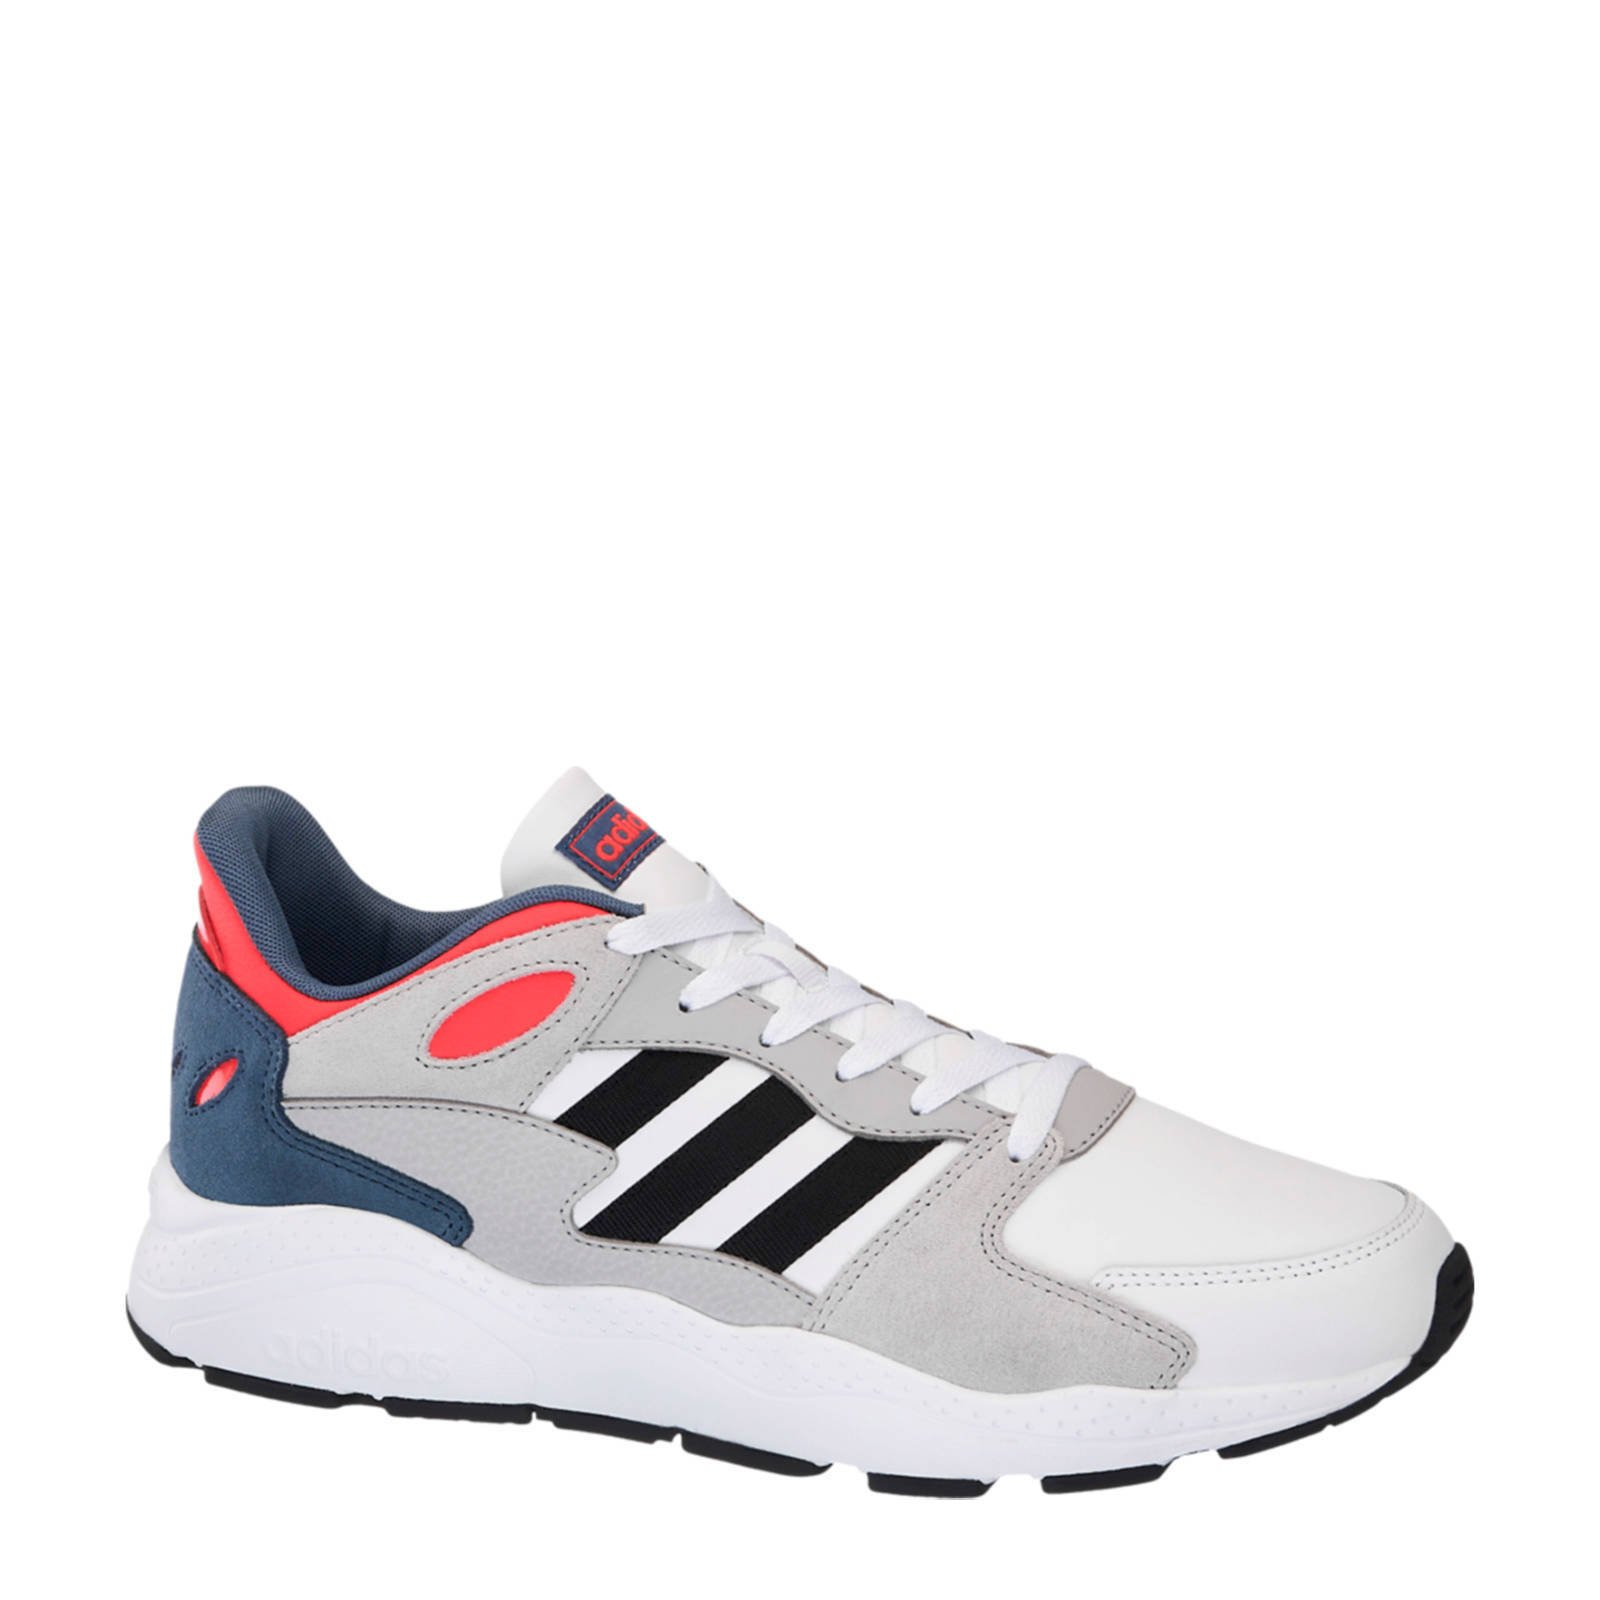 adidas Chaos sneakers grijs/wit/rood | wehkamp